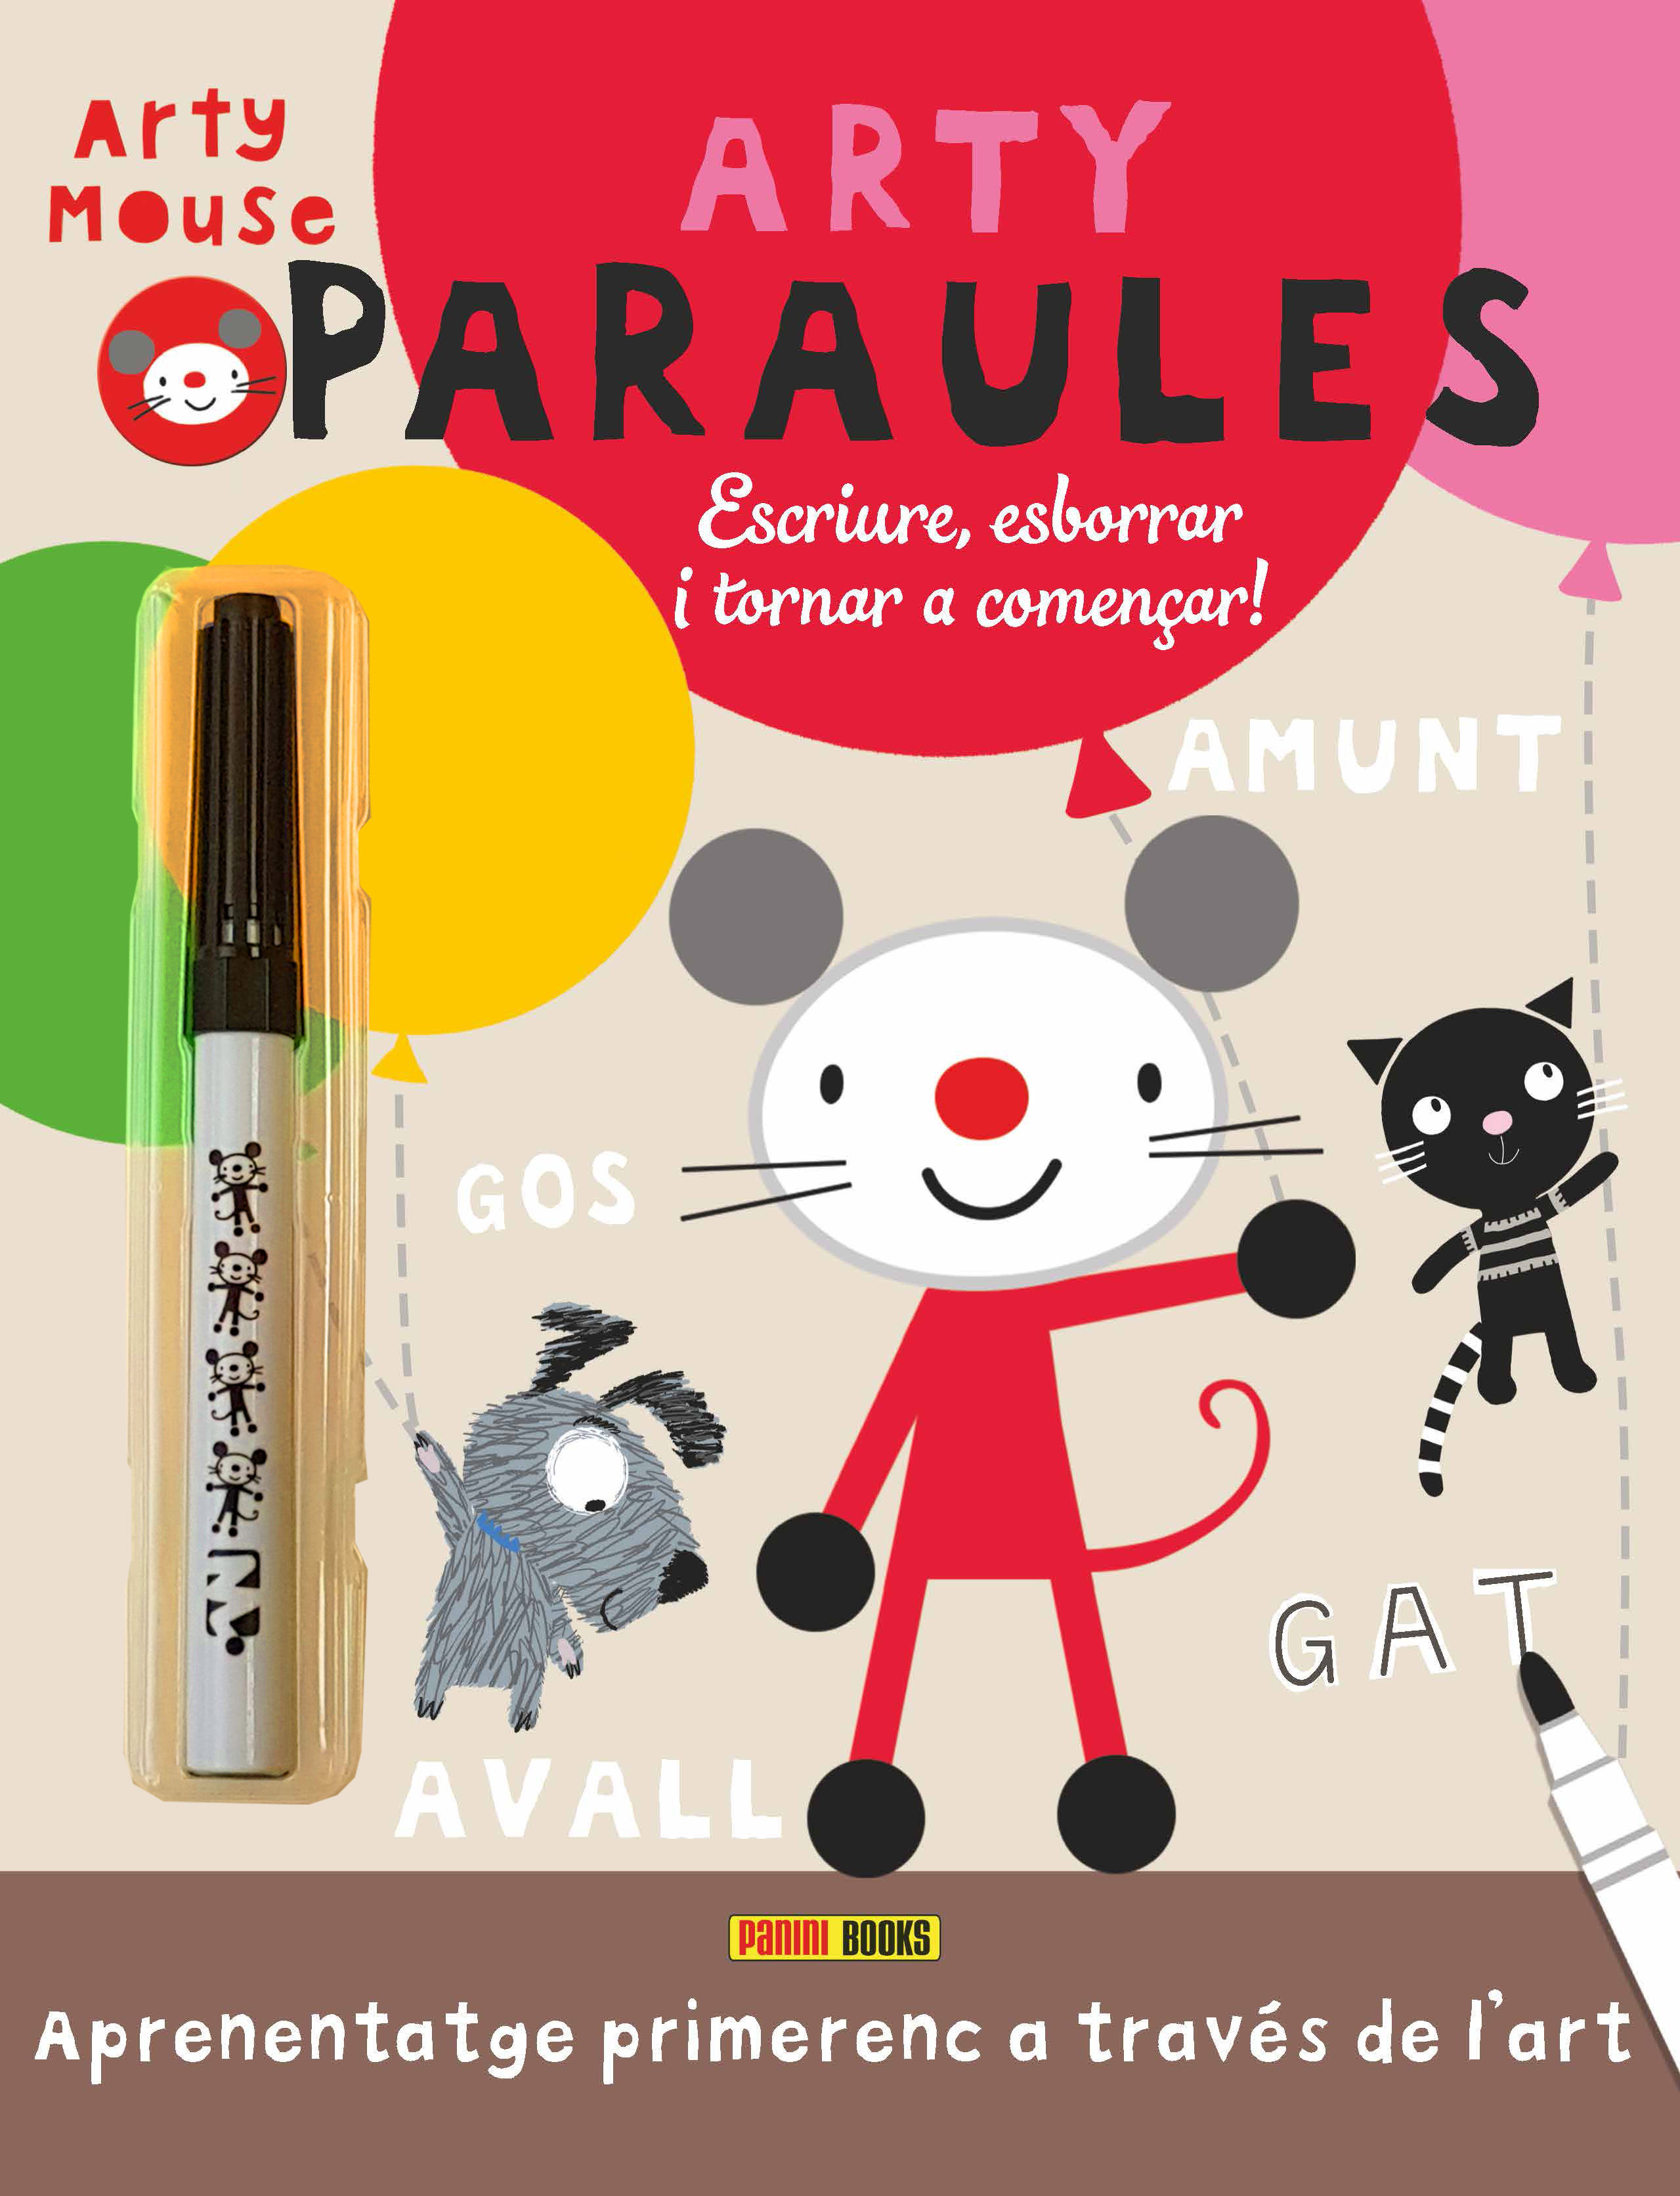 ARTY MOUSE ARTY PARAULES